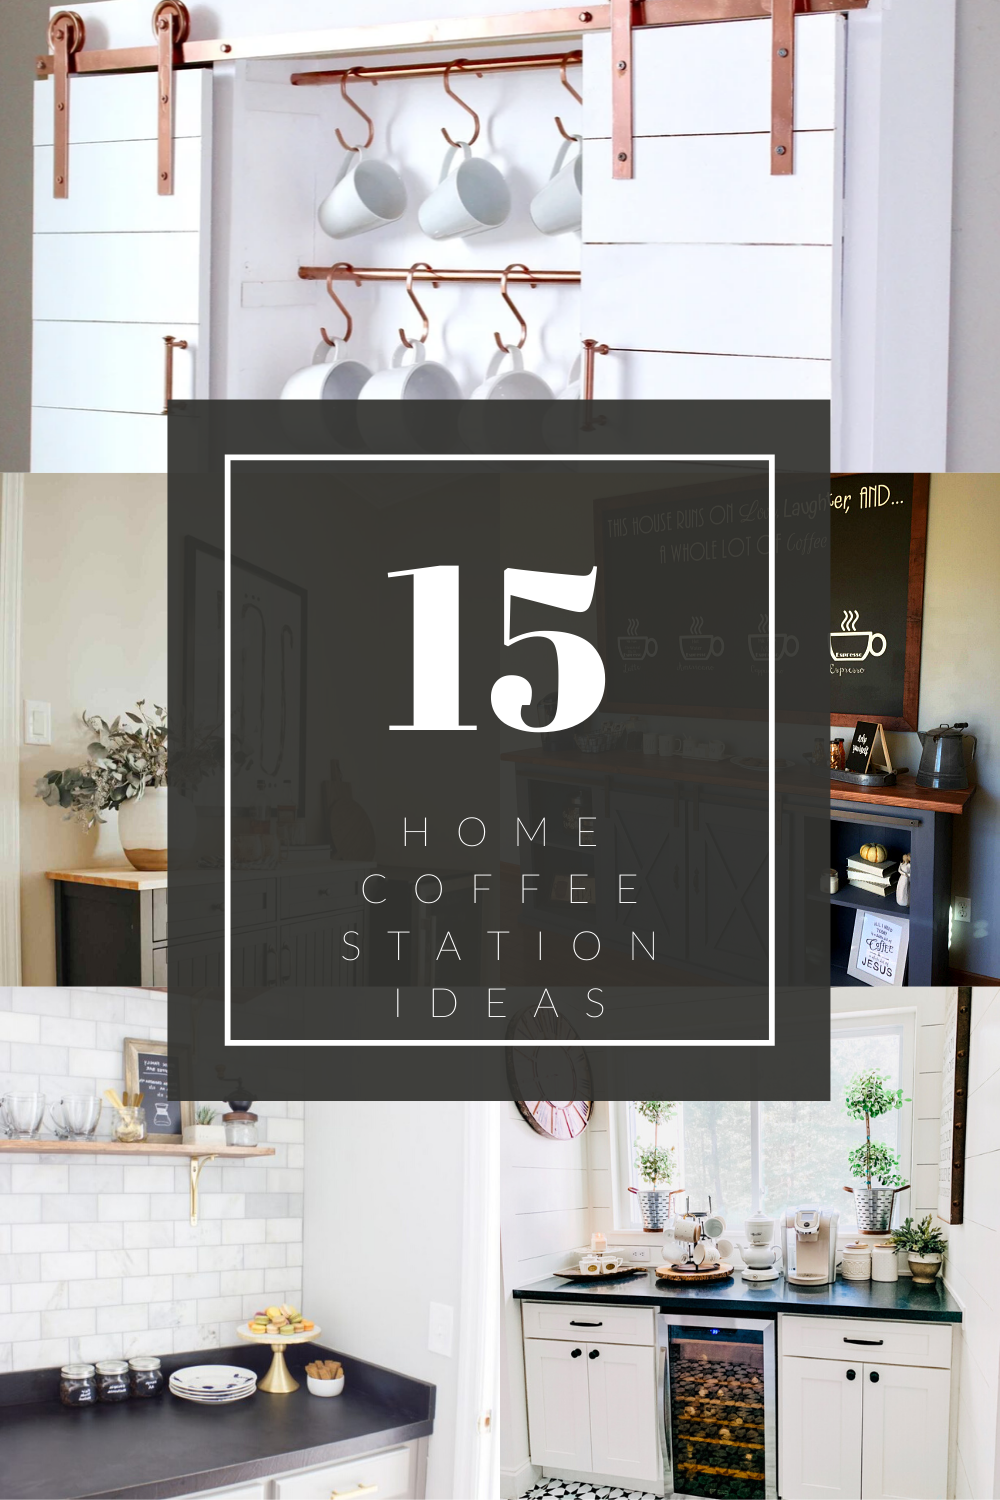 Home Coffee Station Ideas